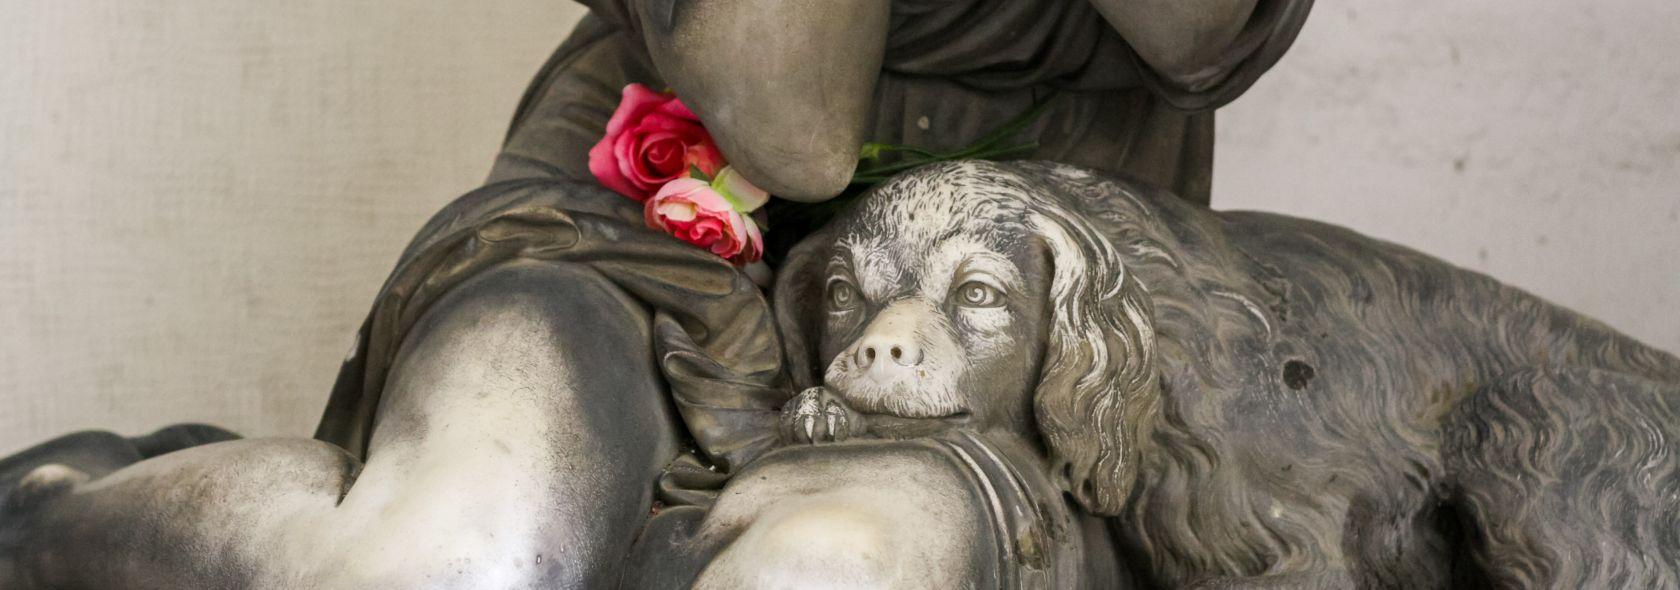 Monumental Cemetery of Staglieno - Adobe Stock - Liguria Digitale